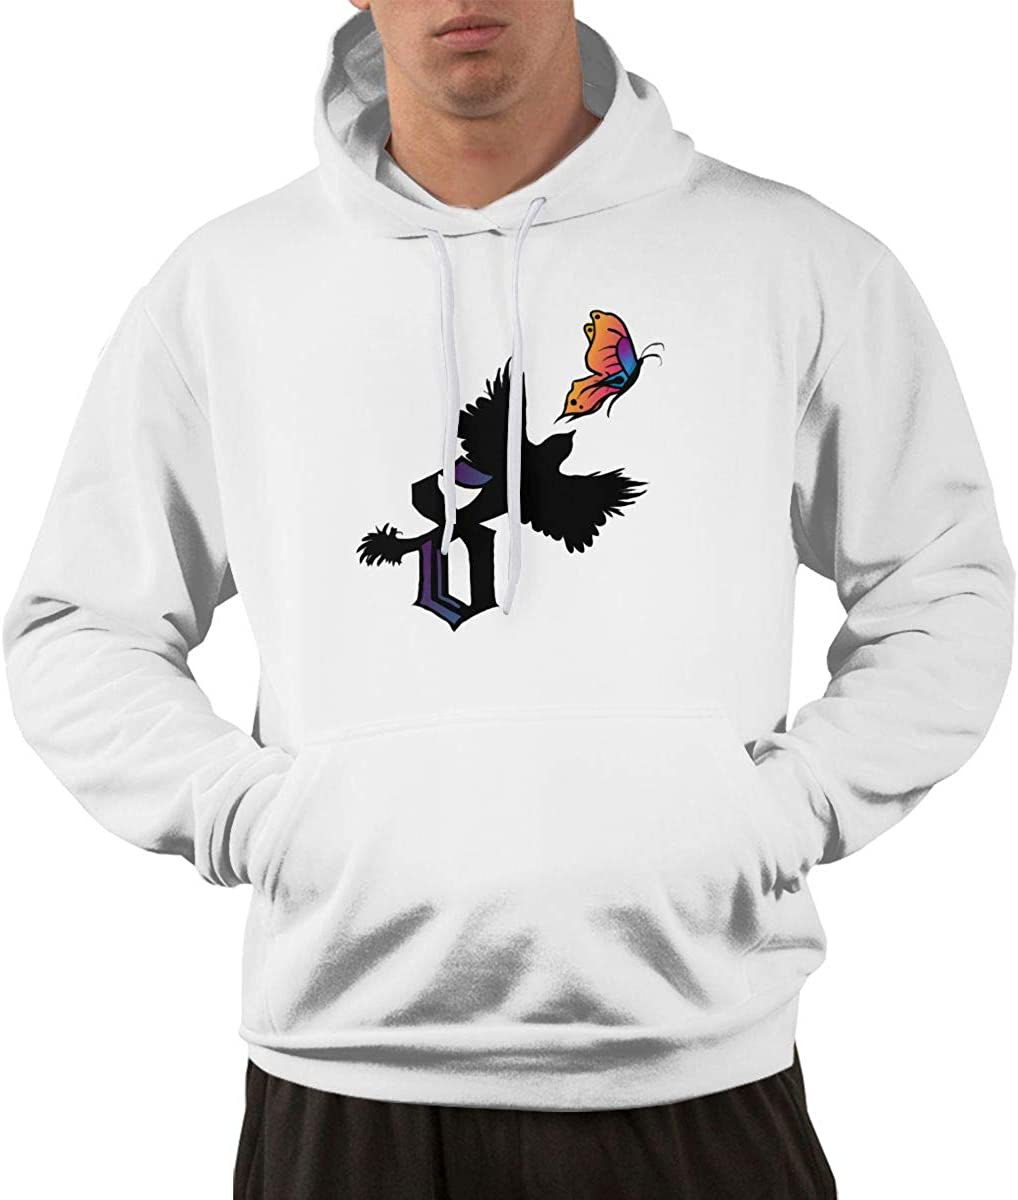 ASFSDGSDG Shinedowns Crow Chasing The Butterfly Mens Comfortable Hoodie